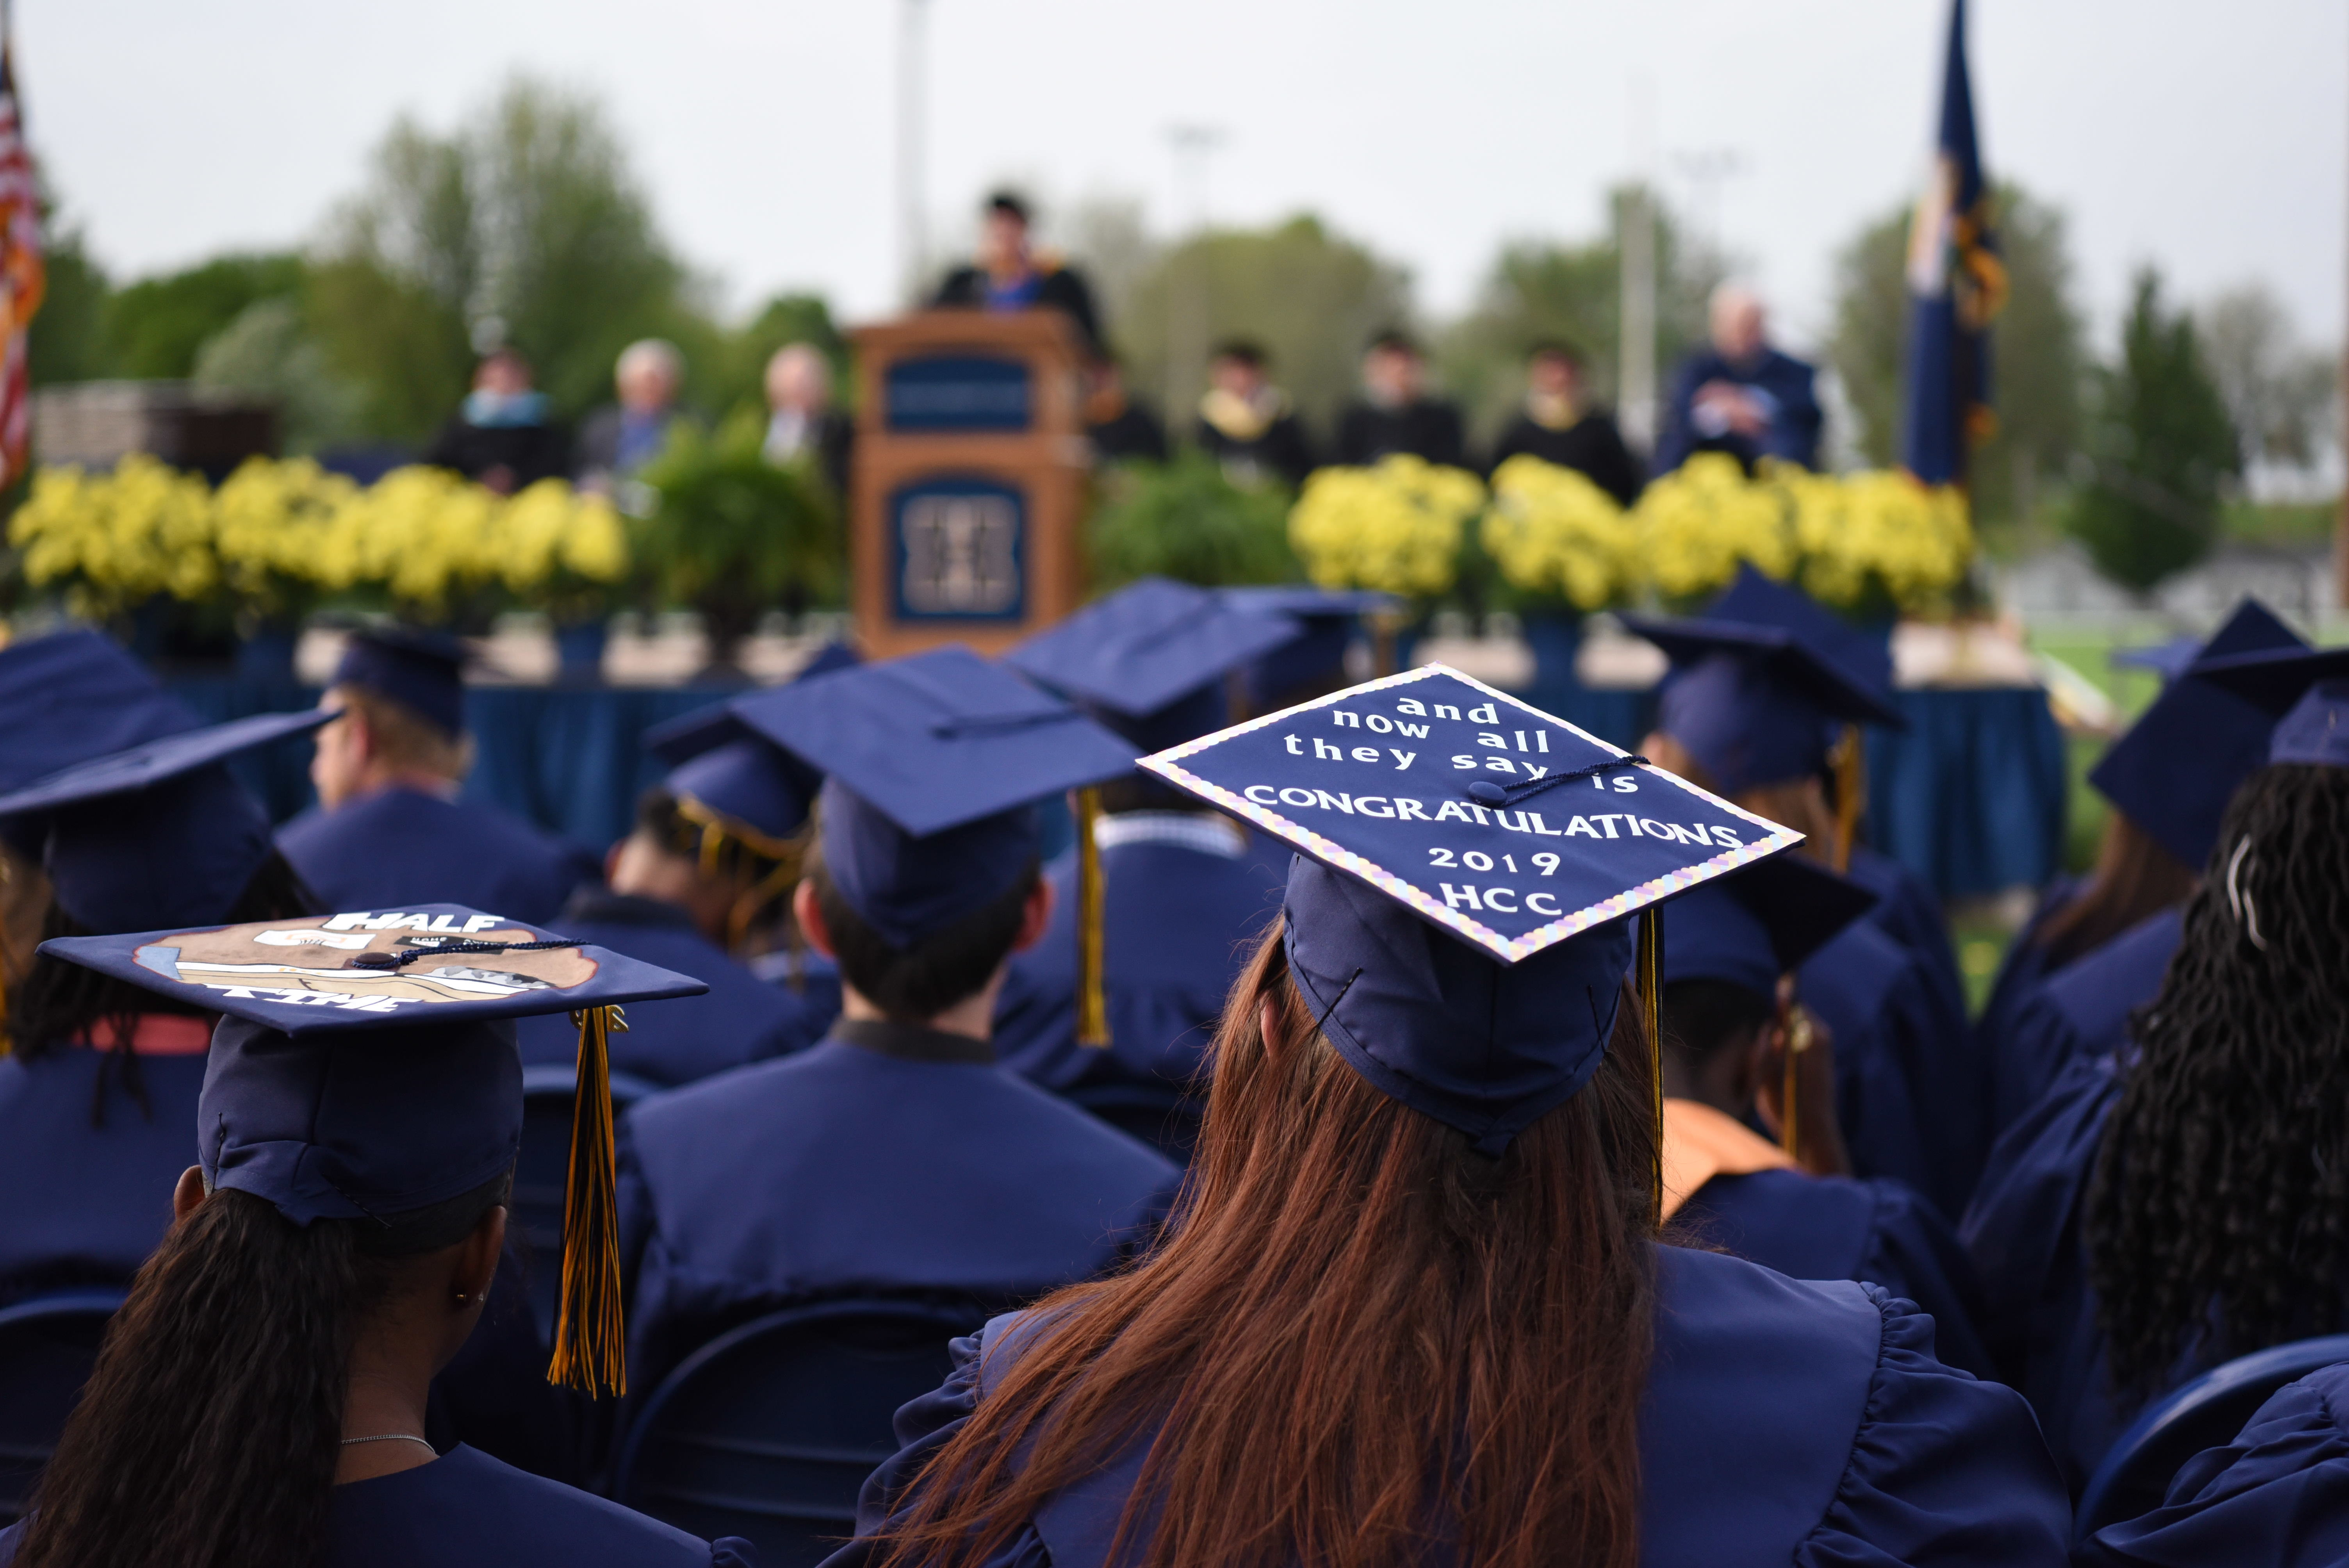 Highland Community College Awards 382 Certificates & Degrees During 2019 Commencement